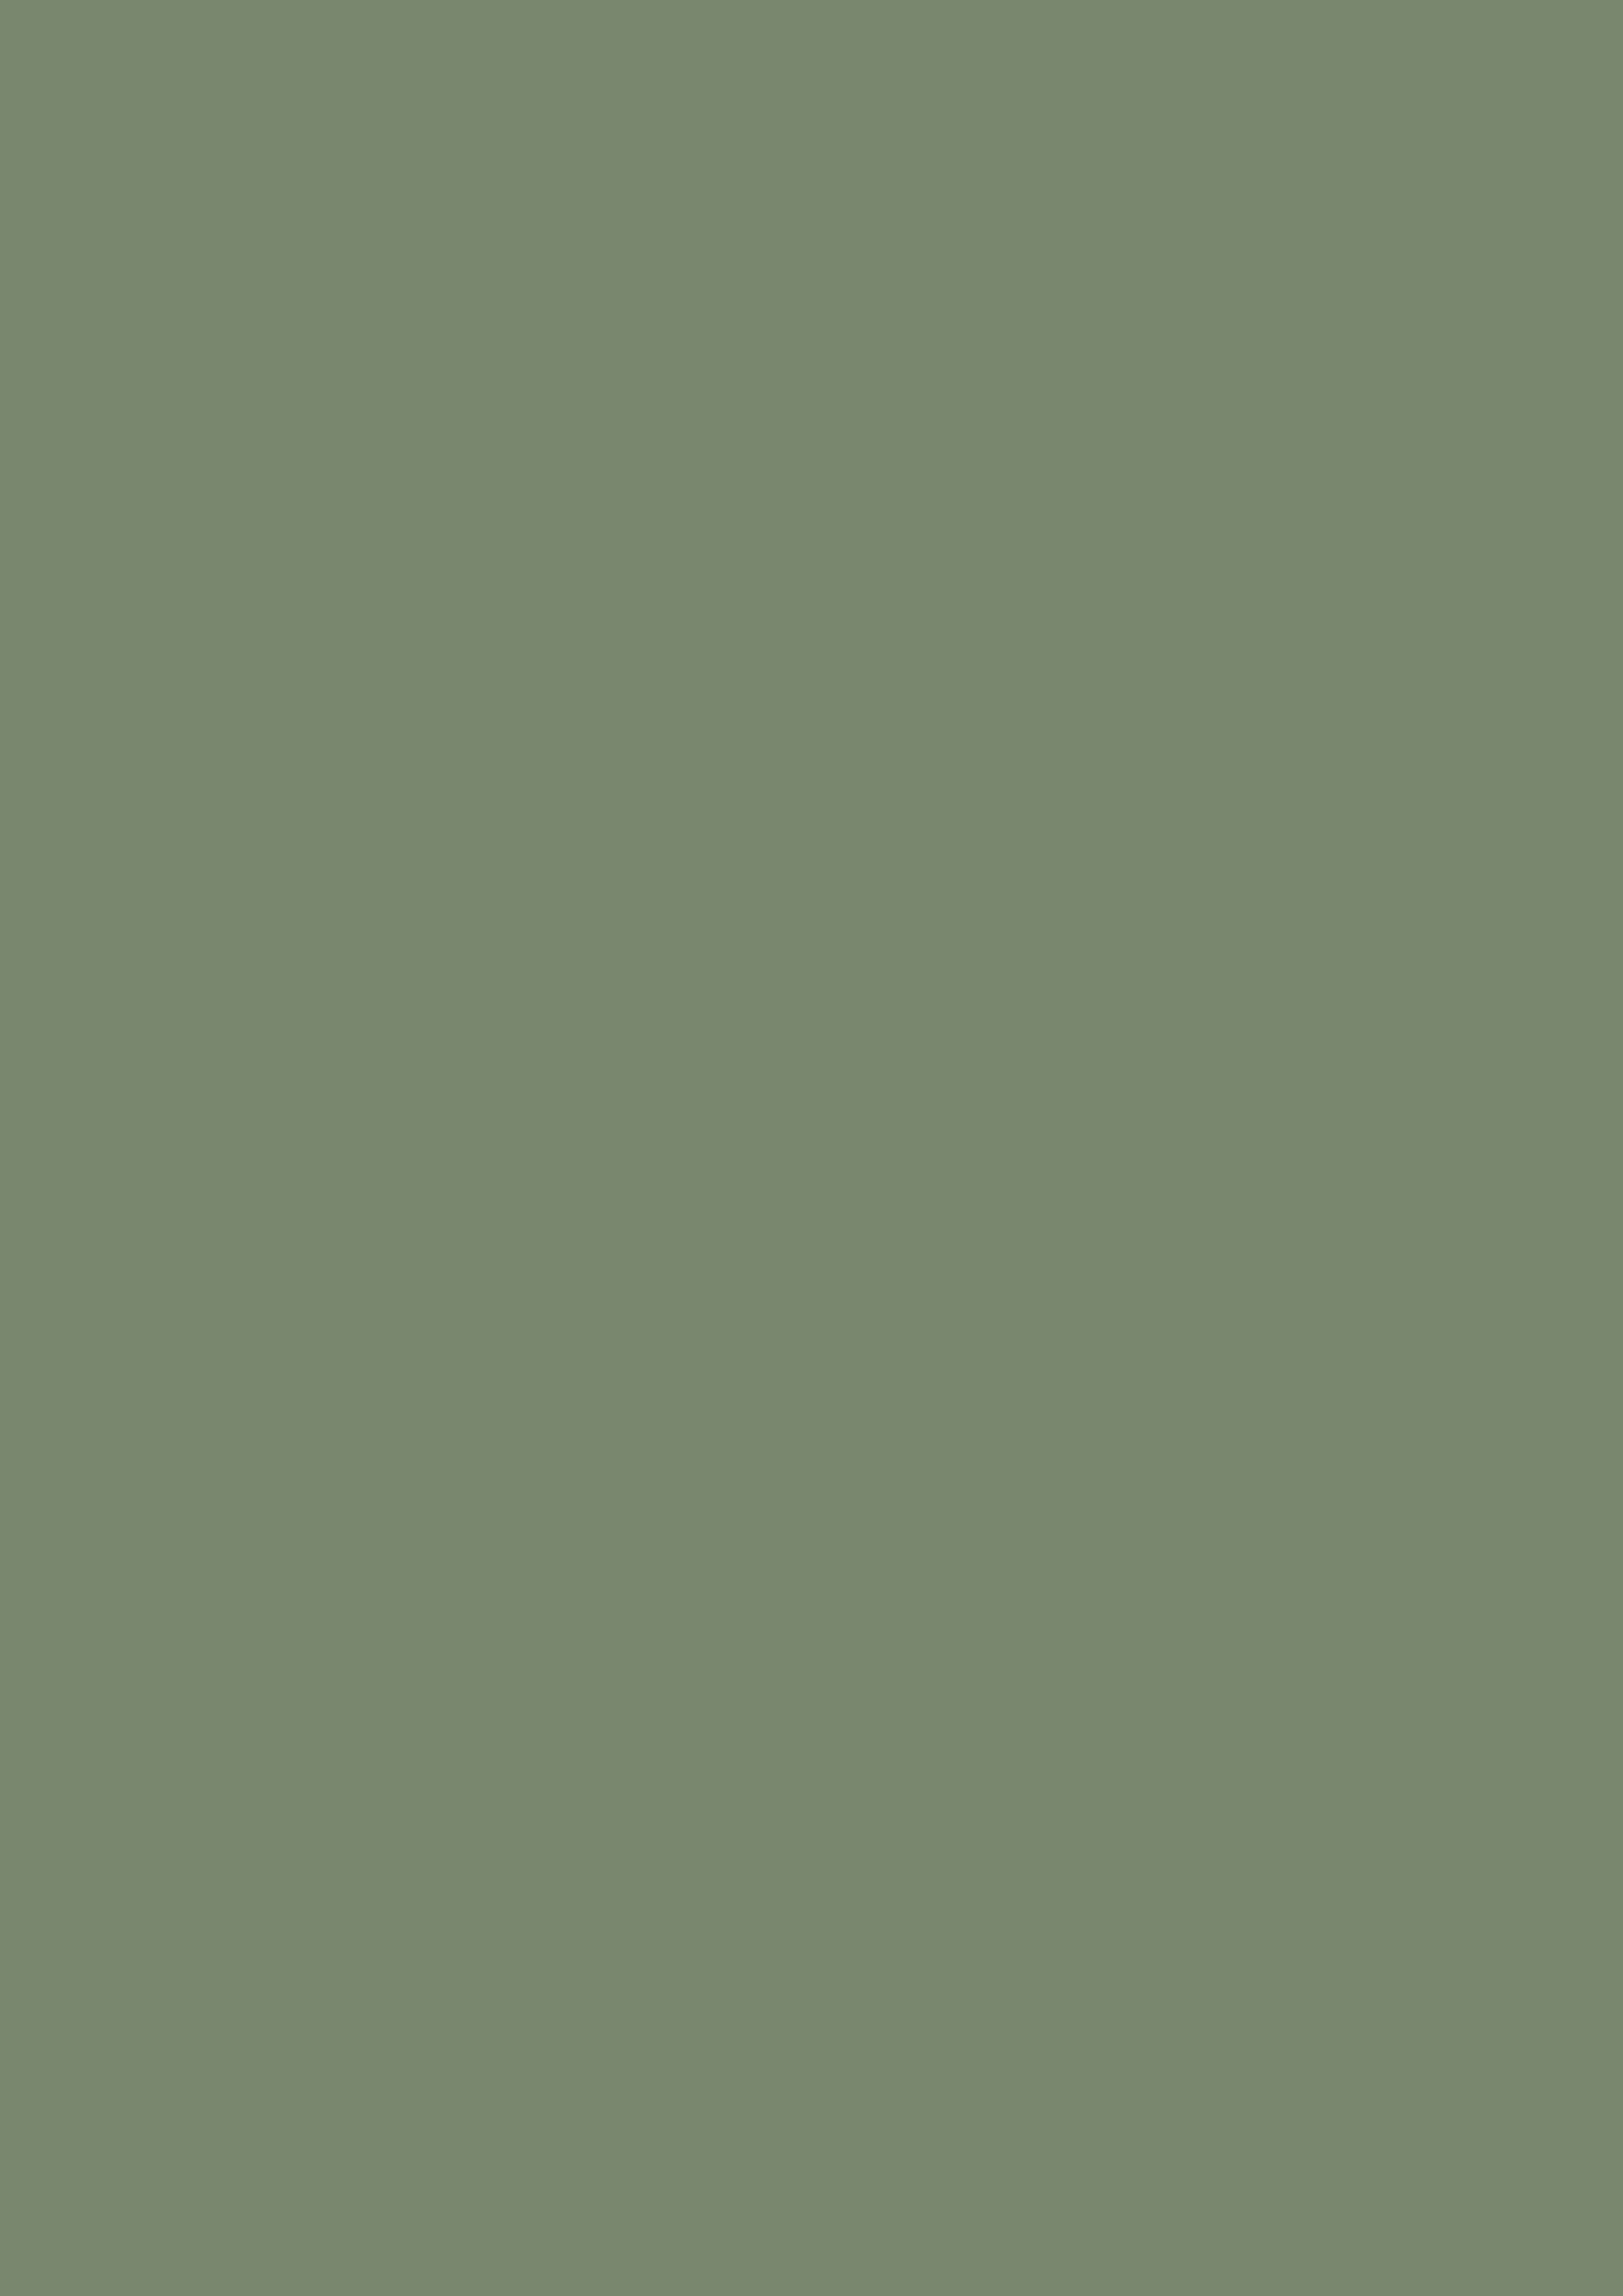 2480x3508 Camouflage Green Solid Color Background